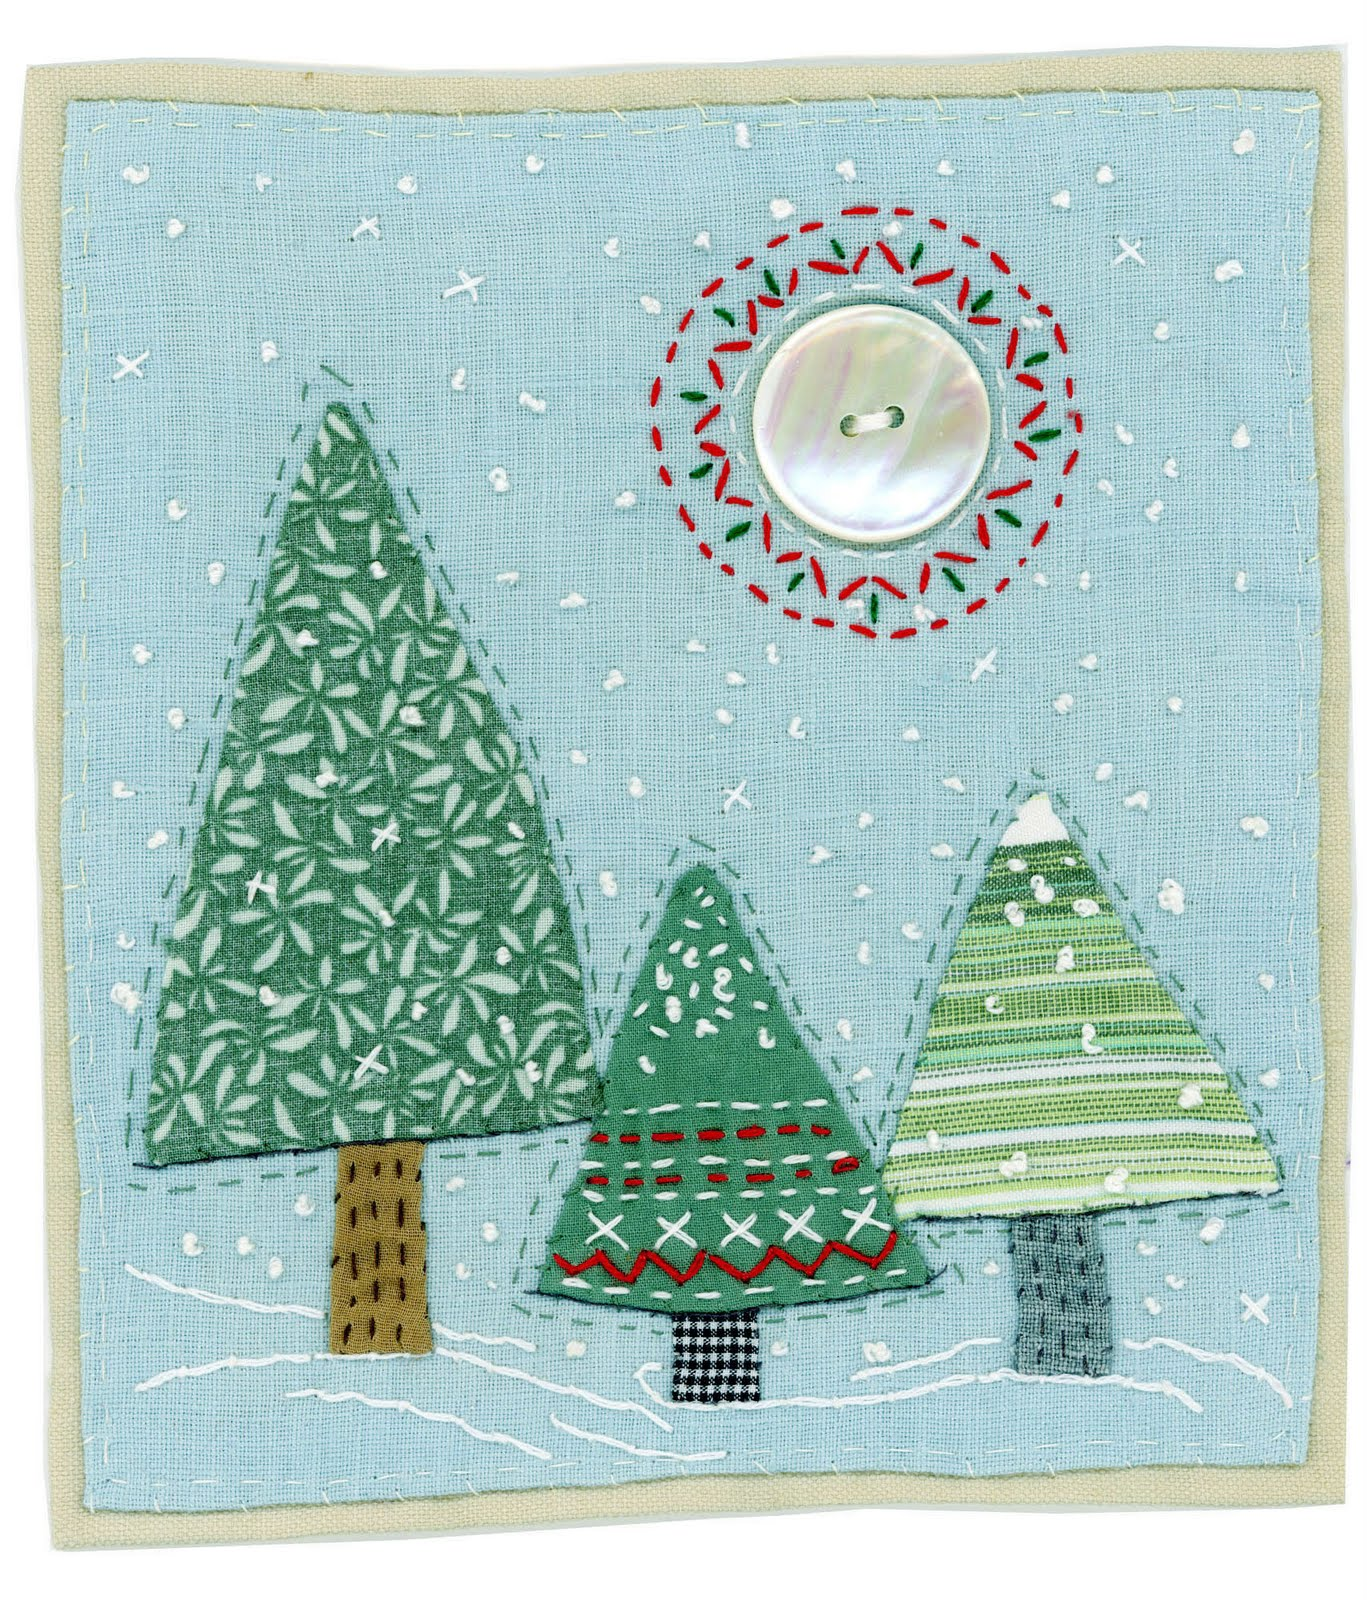 Sharon blackman looking towards christmas for Applique decoration